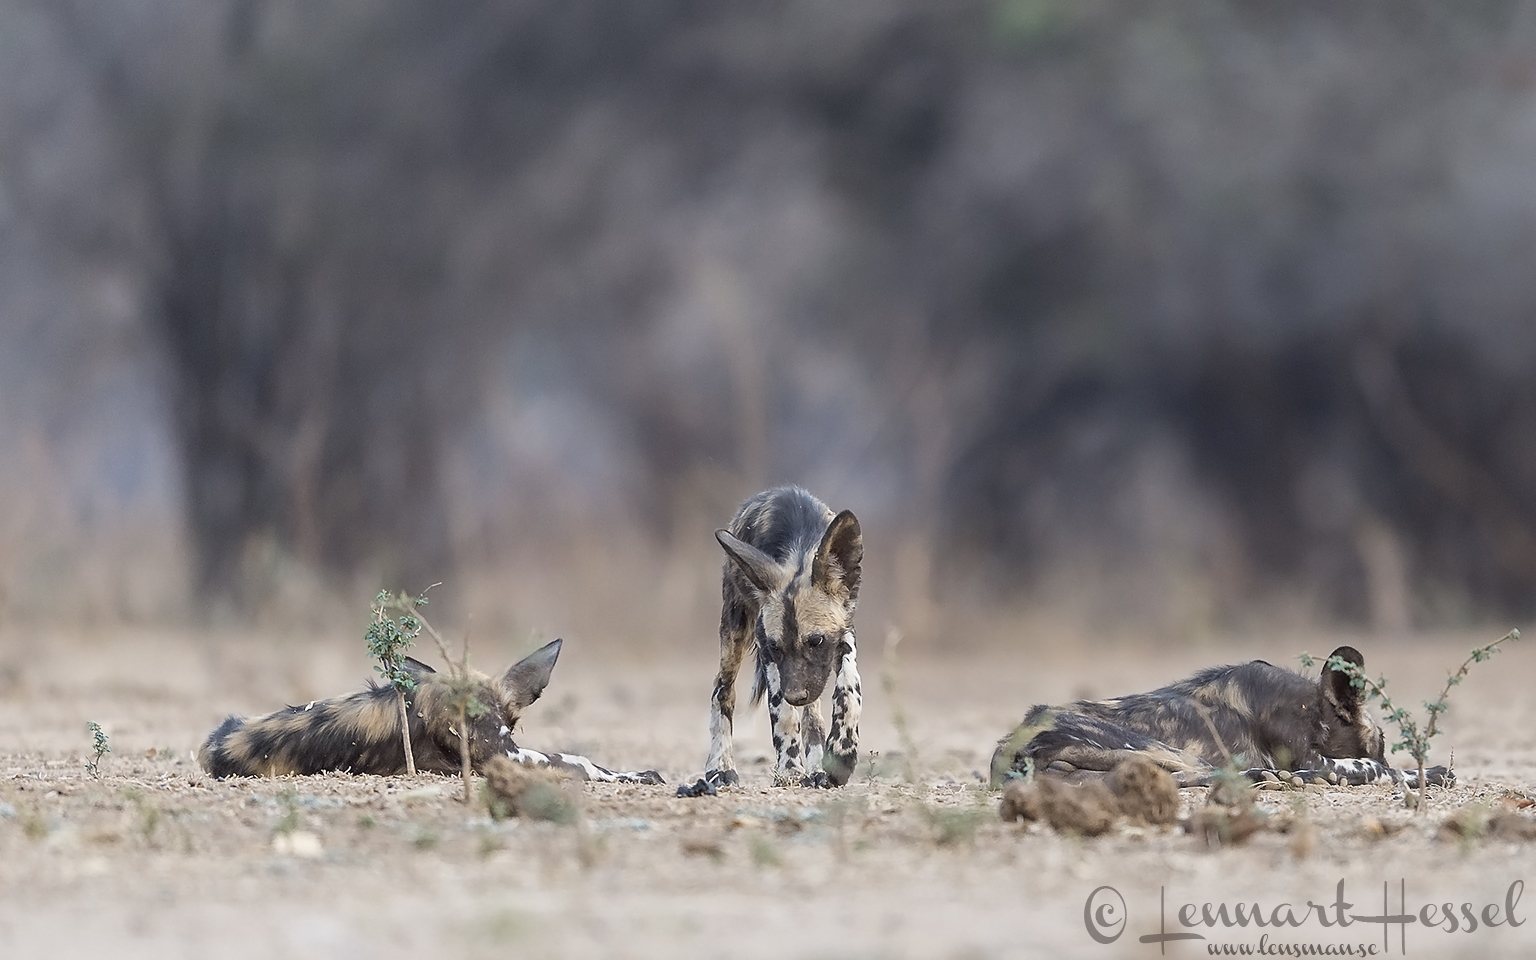 Painted Dogs Mana Pools Mana Pools National Park